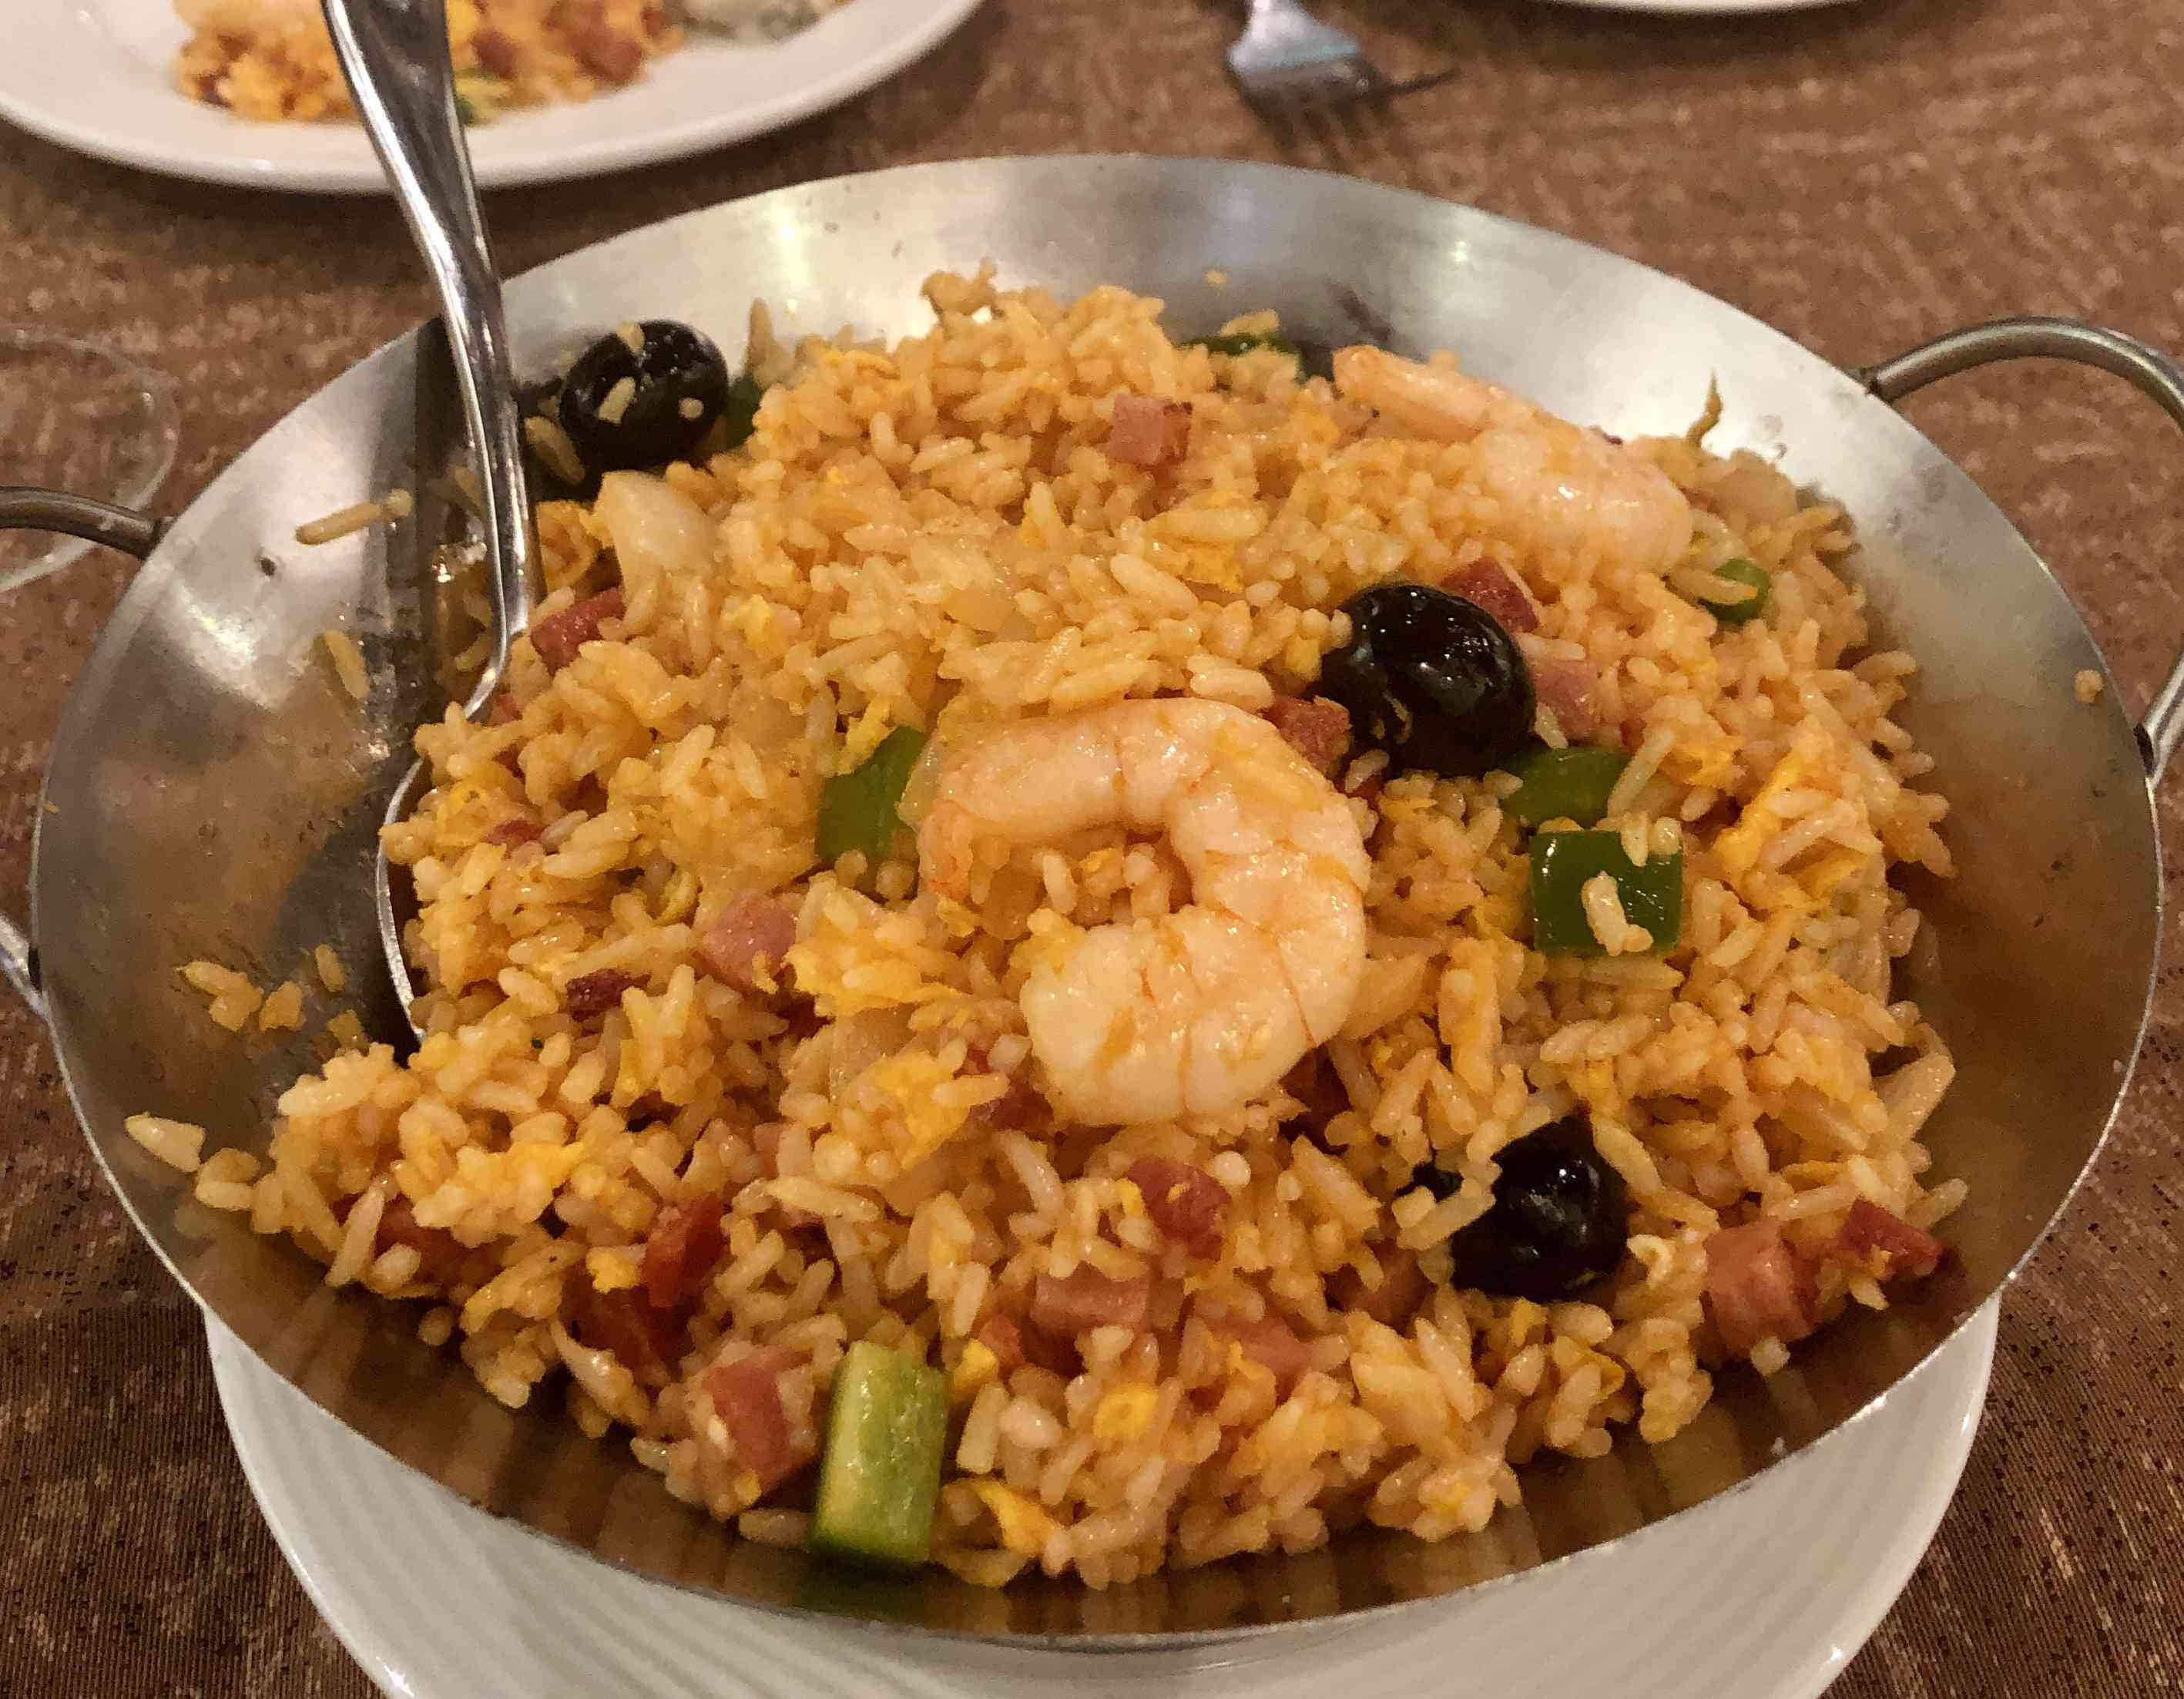 Portuguese fried rice with shrimp and olives in a metal bowl